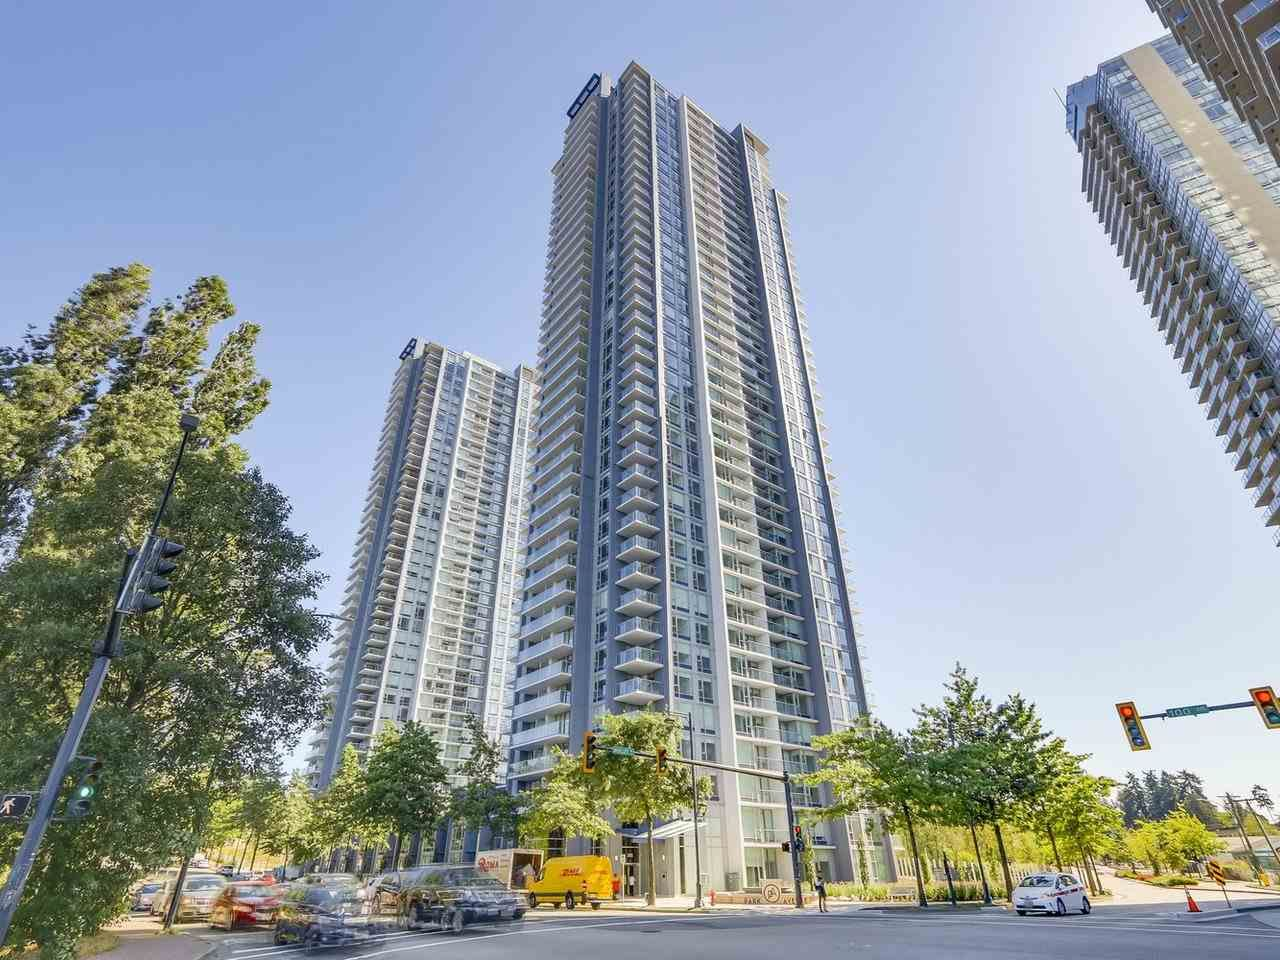 Main Photo: #2106 - 13696 100 Ave, in Surrey: Whalley Condo for sale (North Surrey)  : MLS®# R2206981